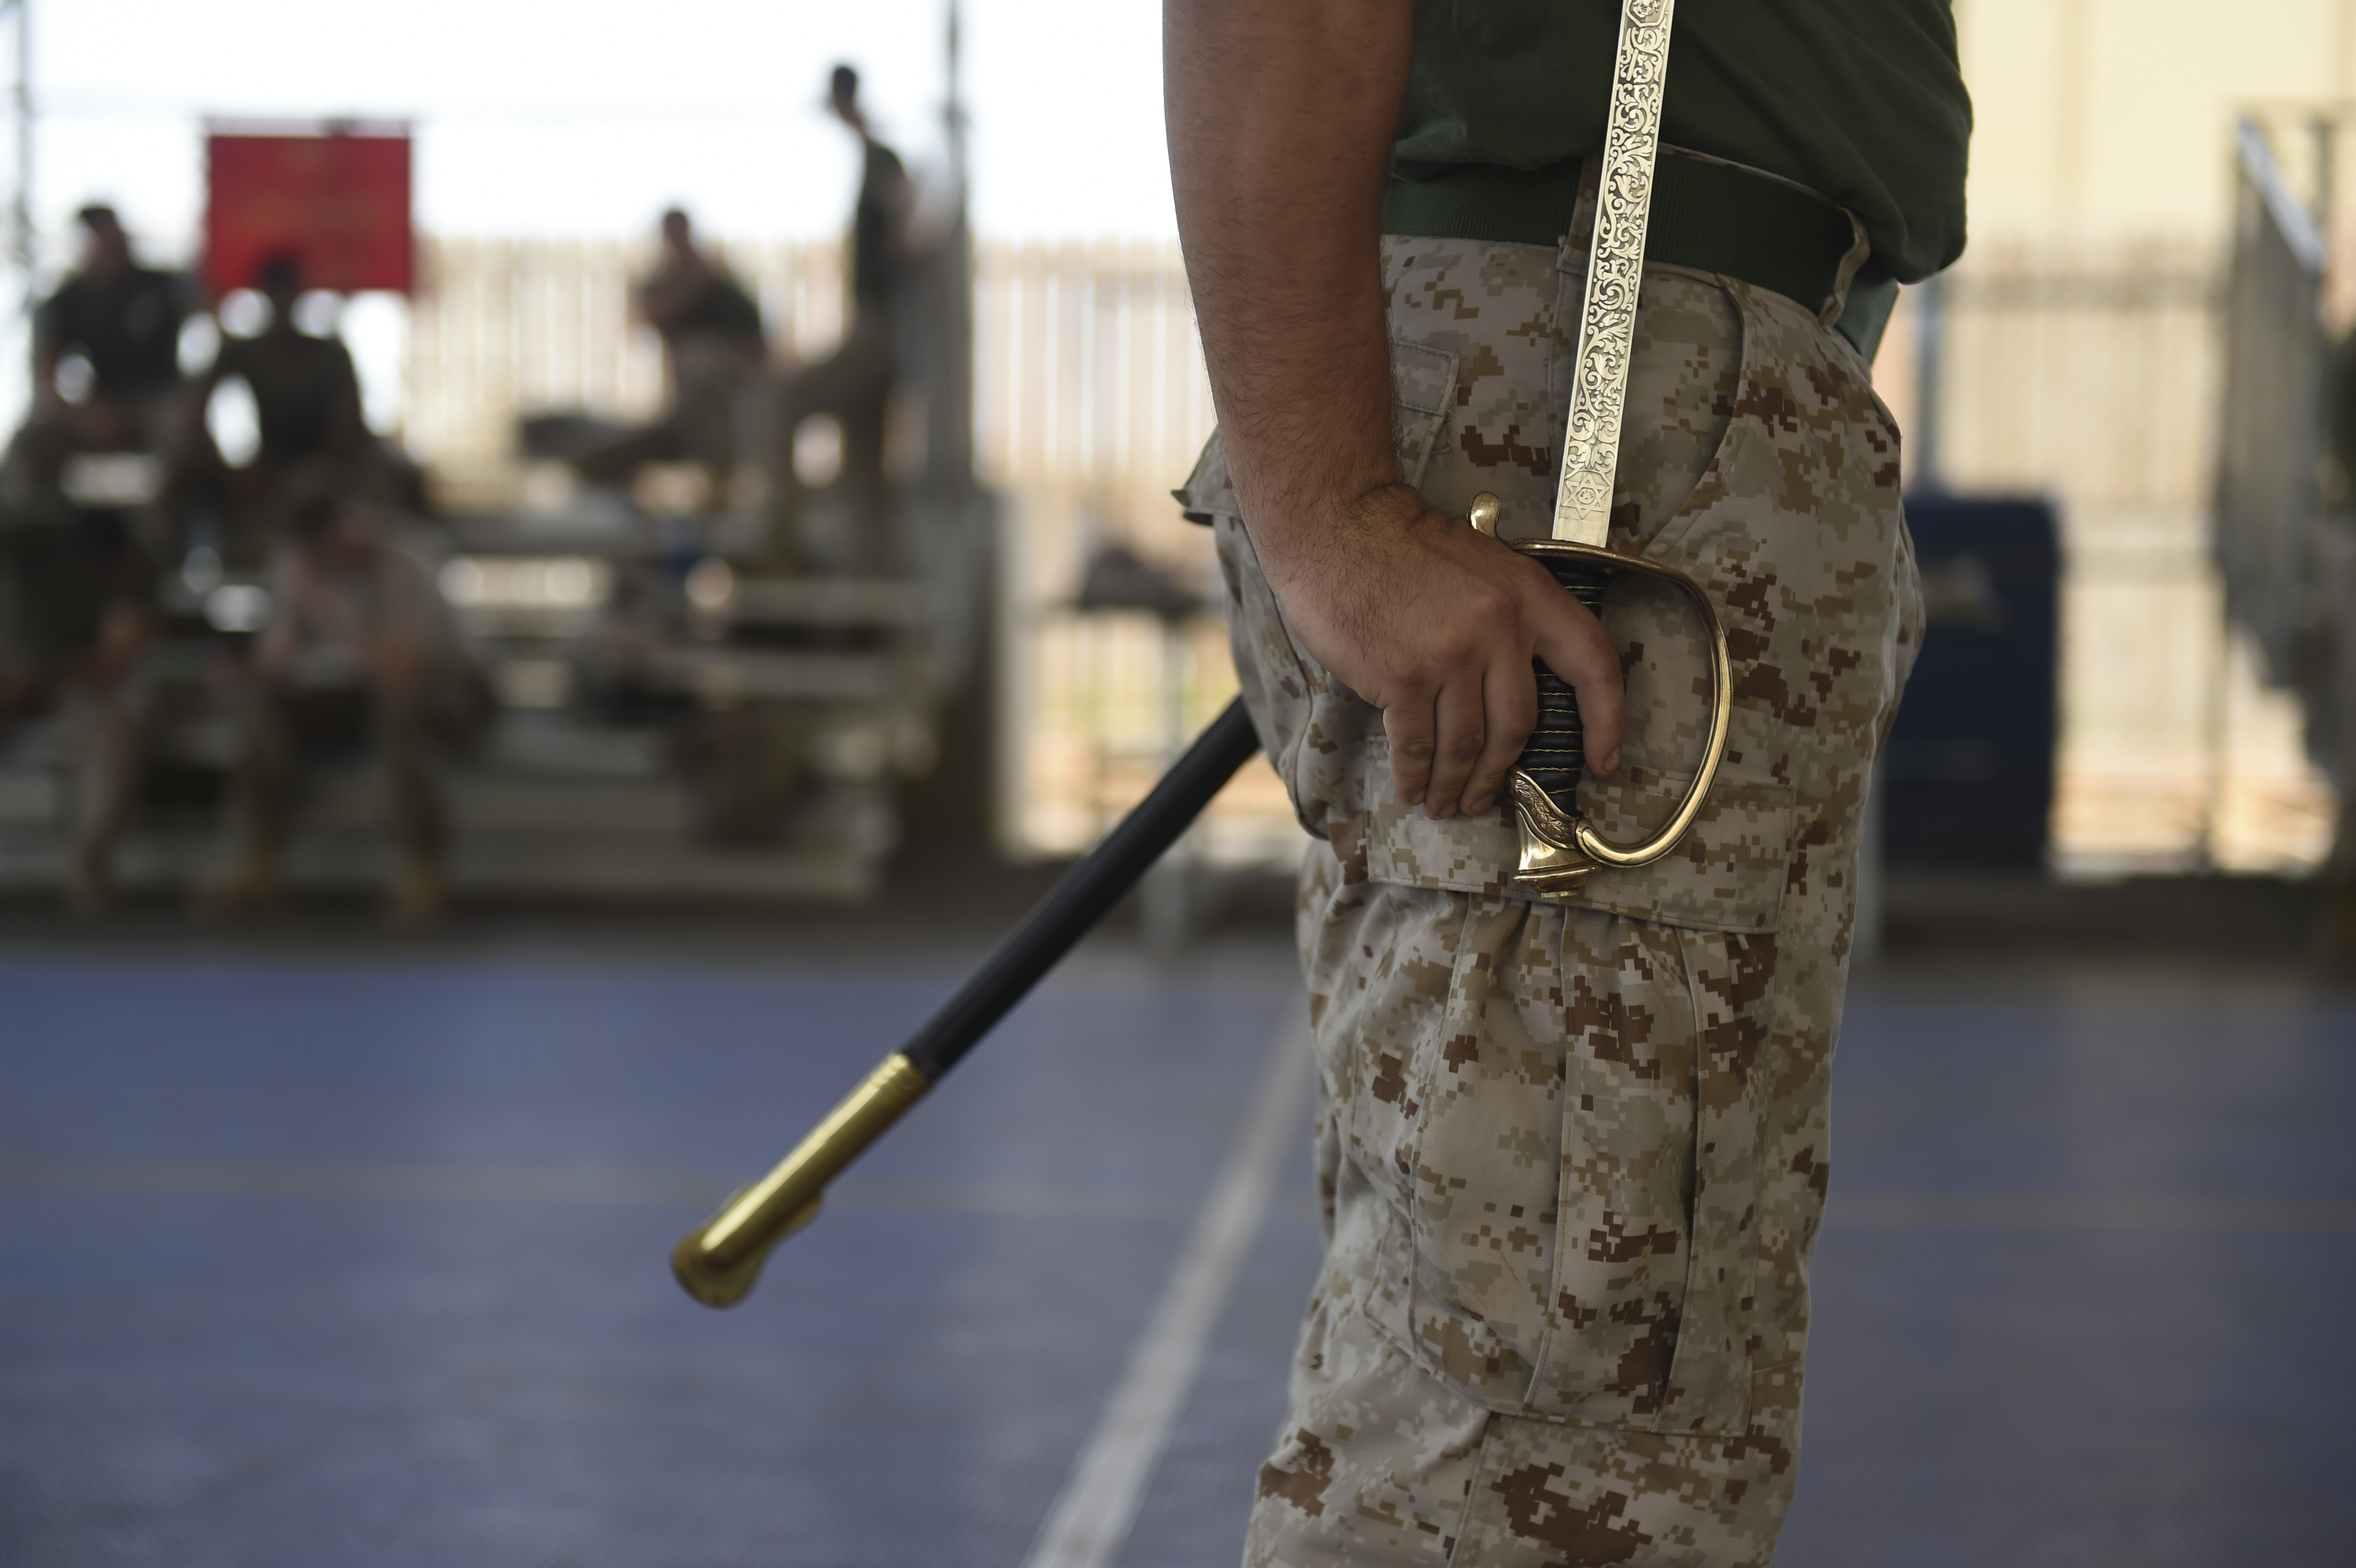 U.S. Marine Corps Cpl. Brandon Ogle, assigned to Combined Joint Task Force-Horn of Africa, prepares to complete a sword and guidon evaluation during the Corporal's Course at Camp Lemonnier, Djibouti, May 24, 2017. As a dual effort of the Marine Corps Element and CJTF-HOA, the Corporals' Leadership Development Course is a professional military education program traditionally for Marine Corps Corporals that places emphasis on basic leadership skills. (U.S. Air Force photo by Staff Sgt. Eboni Prince)